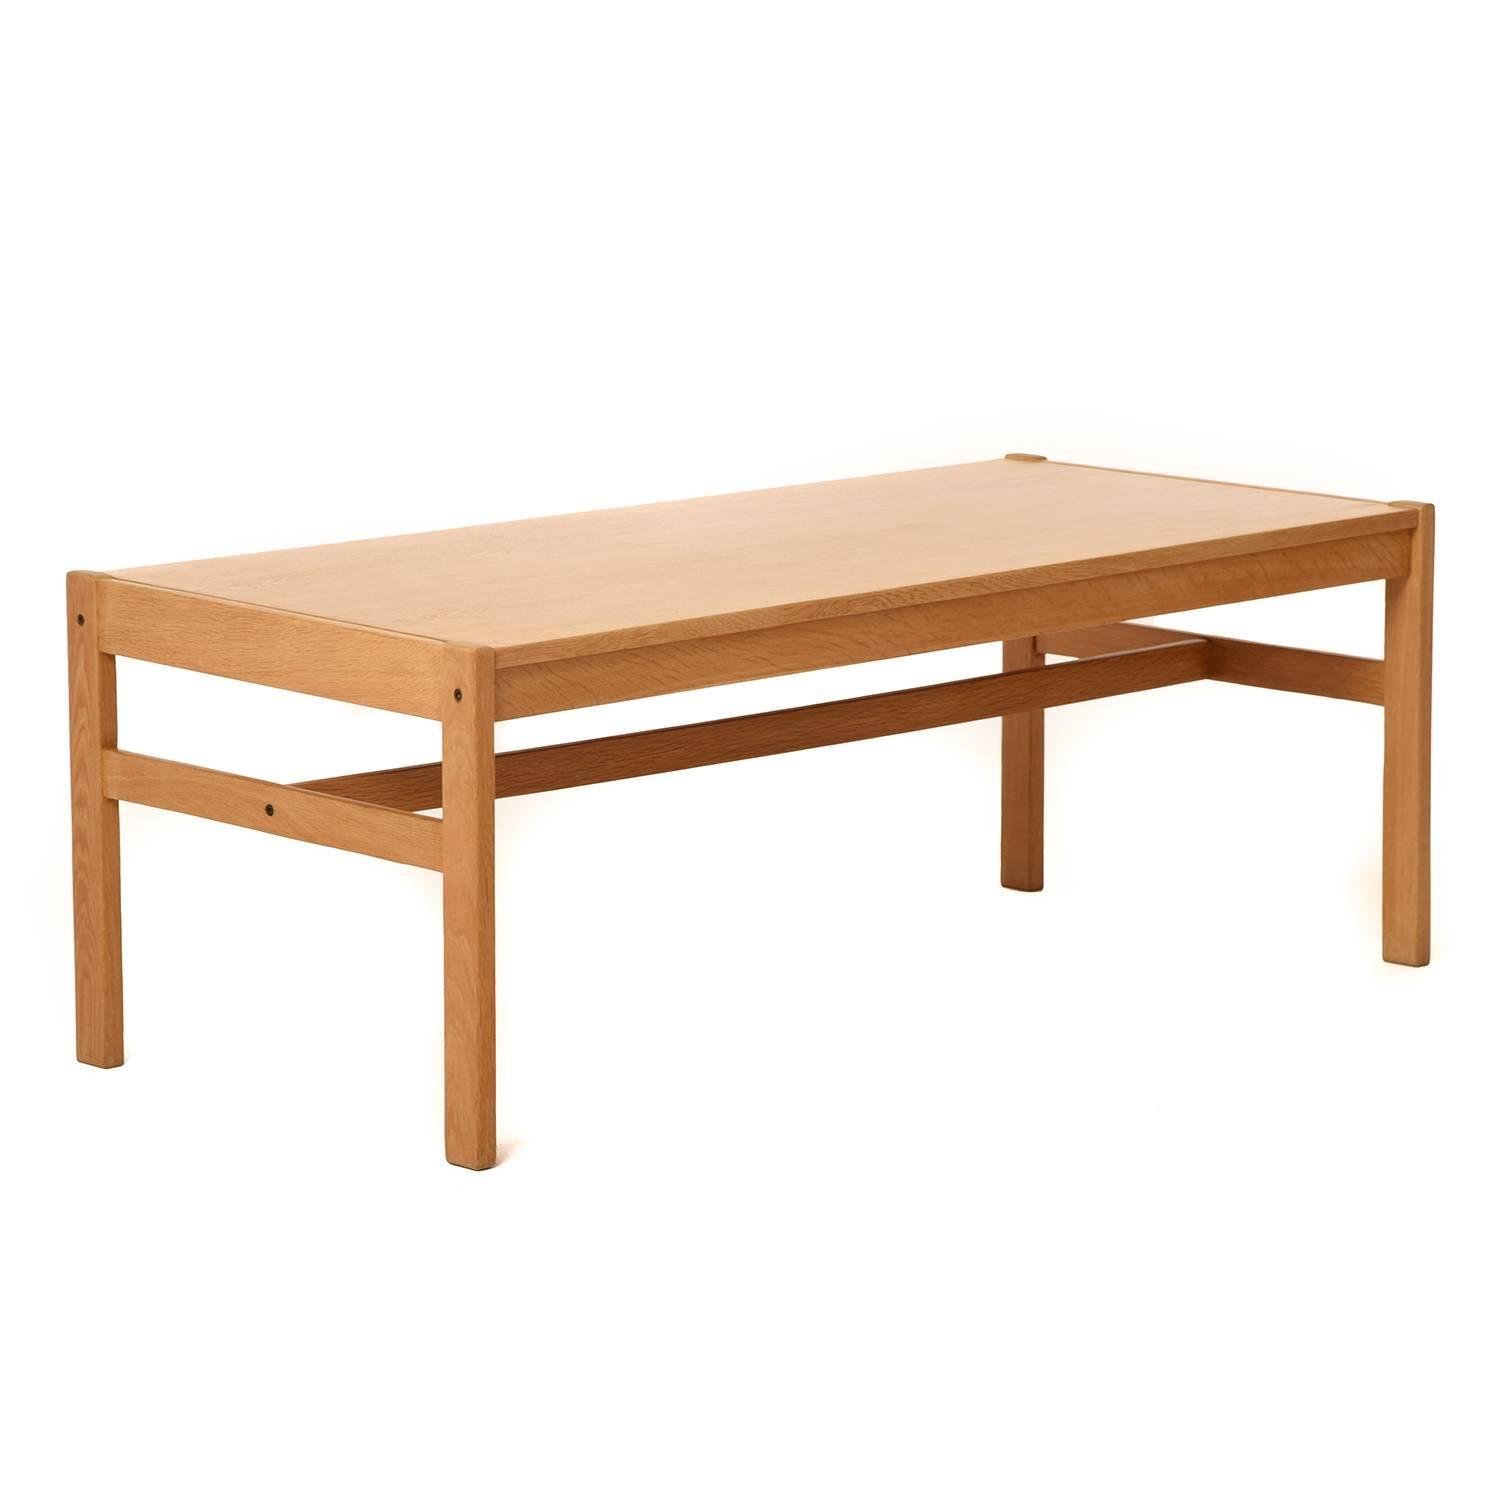 Danish modern coffee table for sale at 1stdibs for Danish modern coffee table